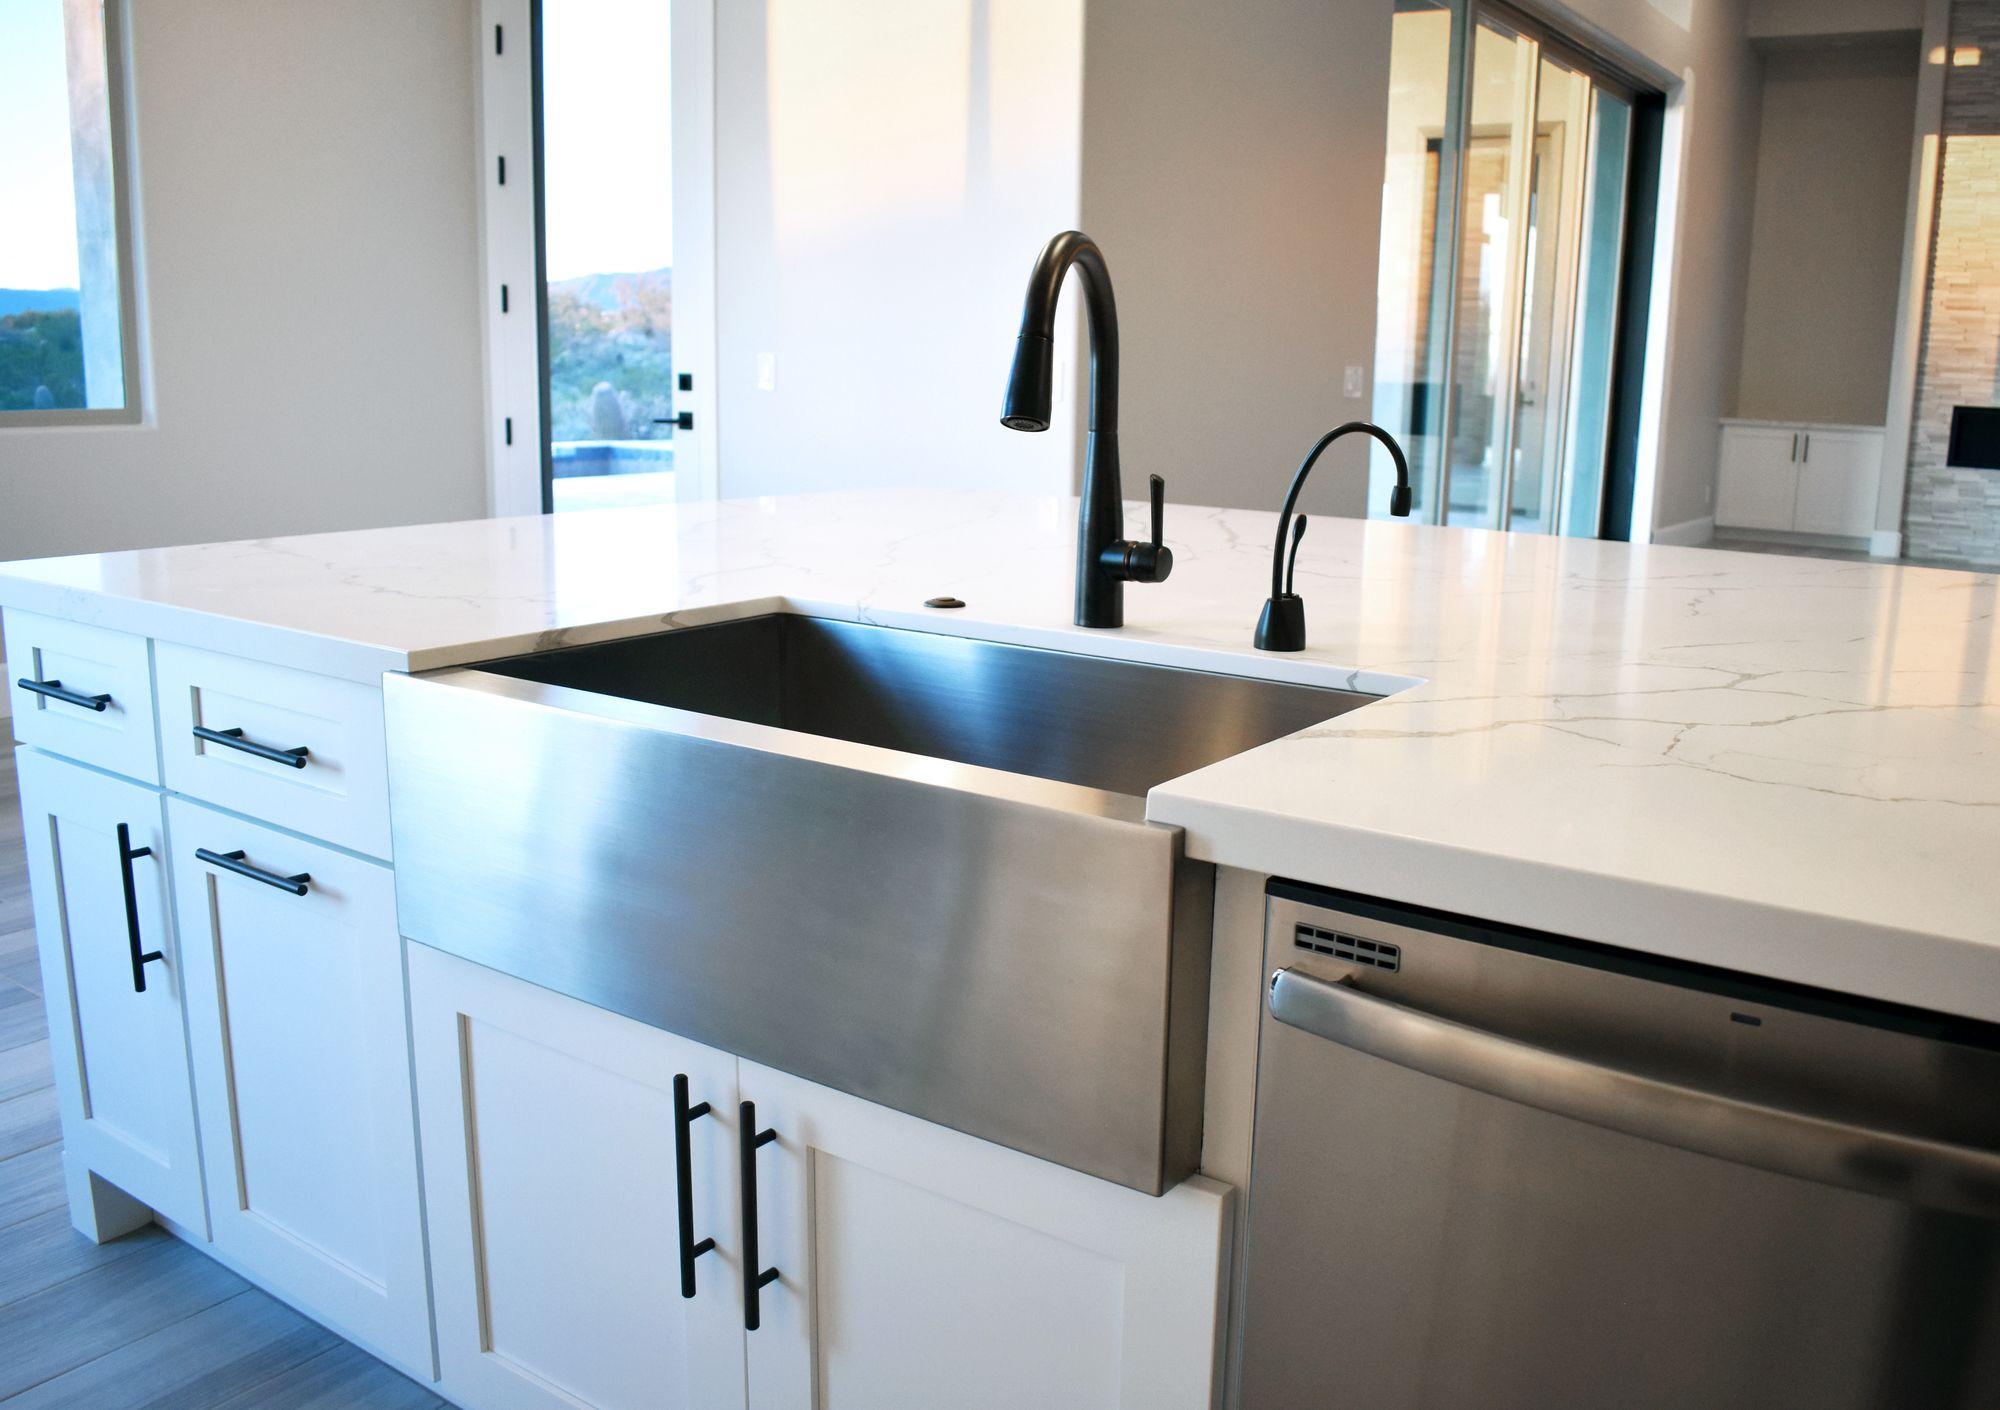 All White Kitchen With Stainless Steel Farmhouse Sink In 2020 Stainless Steel Farmhouse Sink Kitchen Cabinets And Countertops White Modern Kitchen